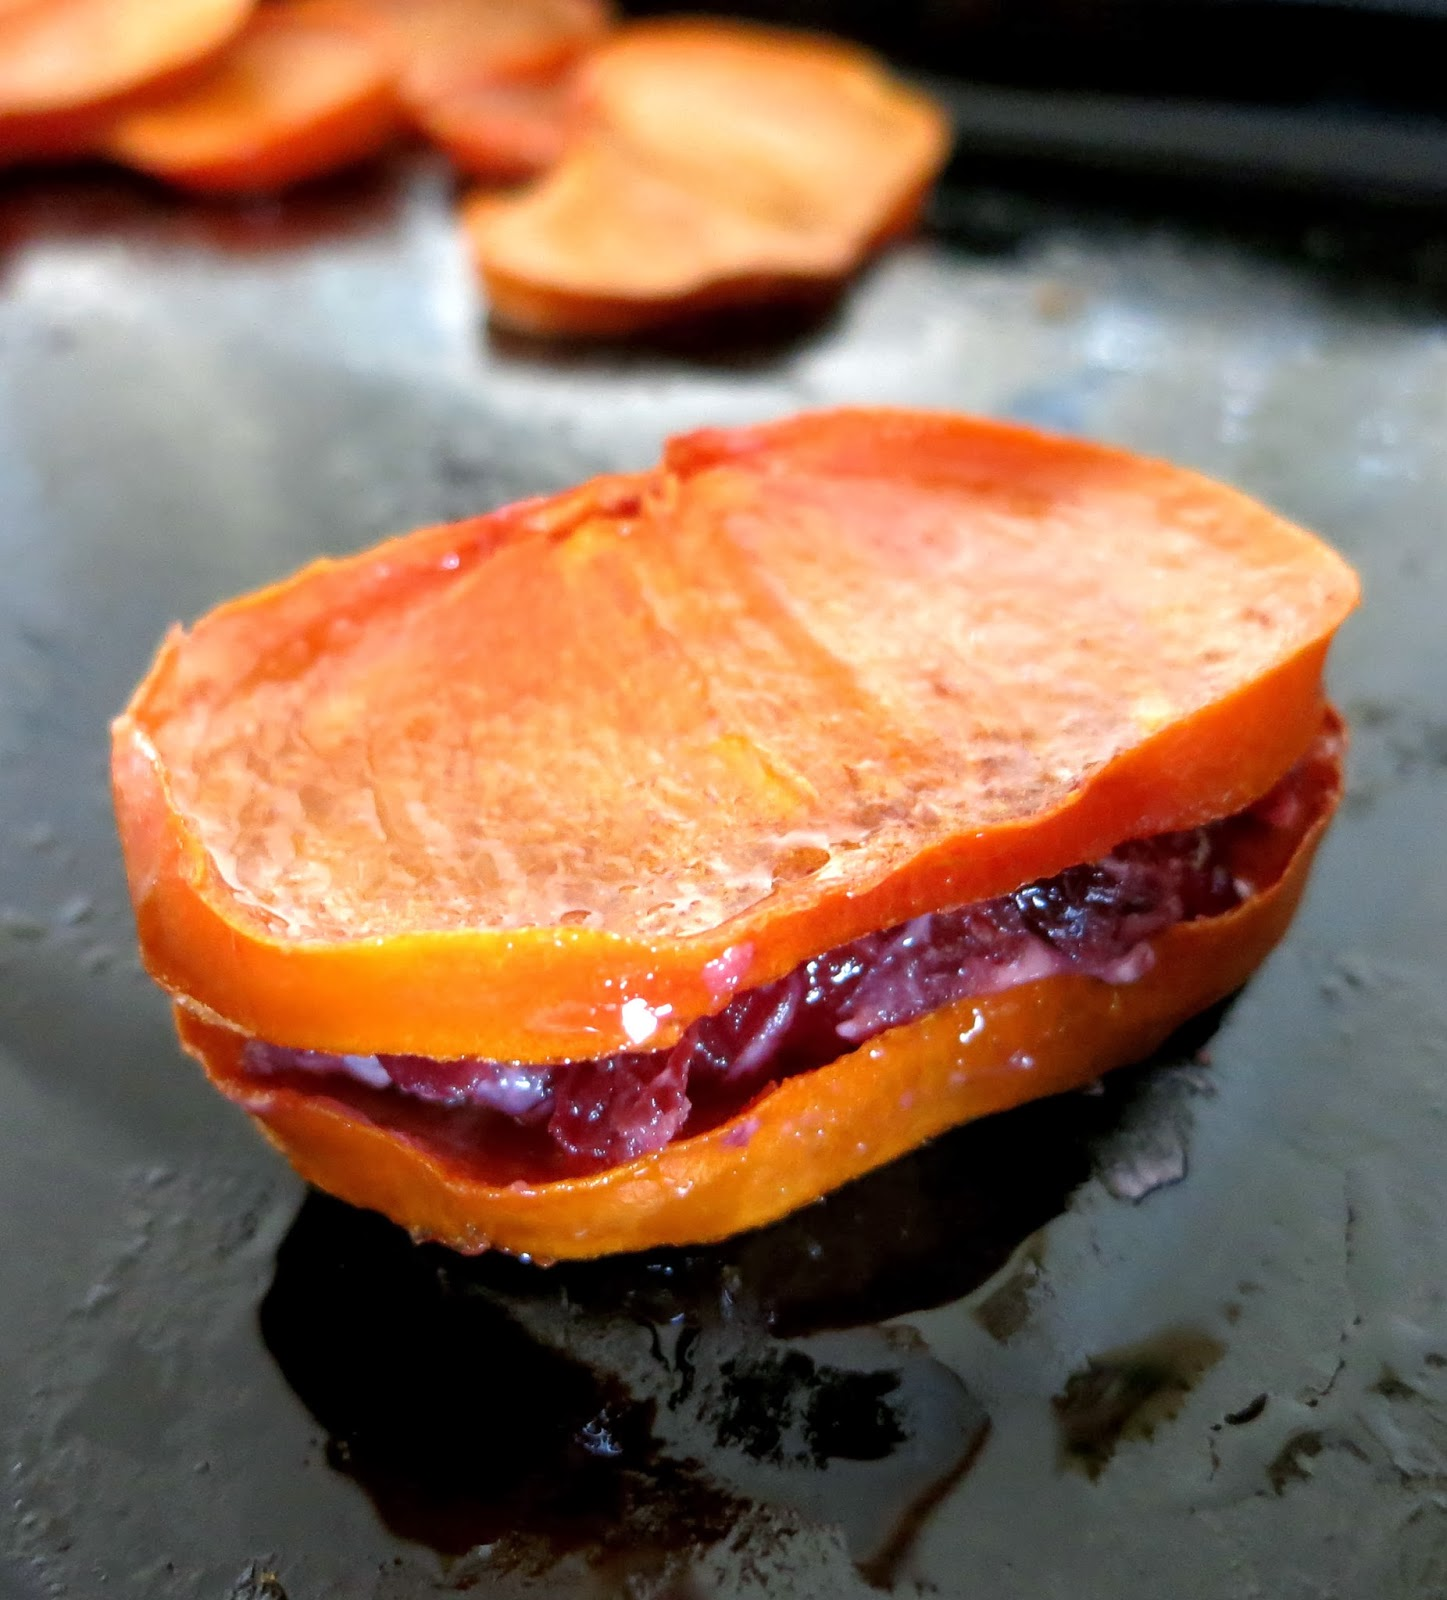 Honey Roasted Persimmon and Goat Cheese Sandwiches